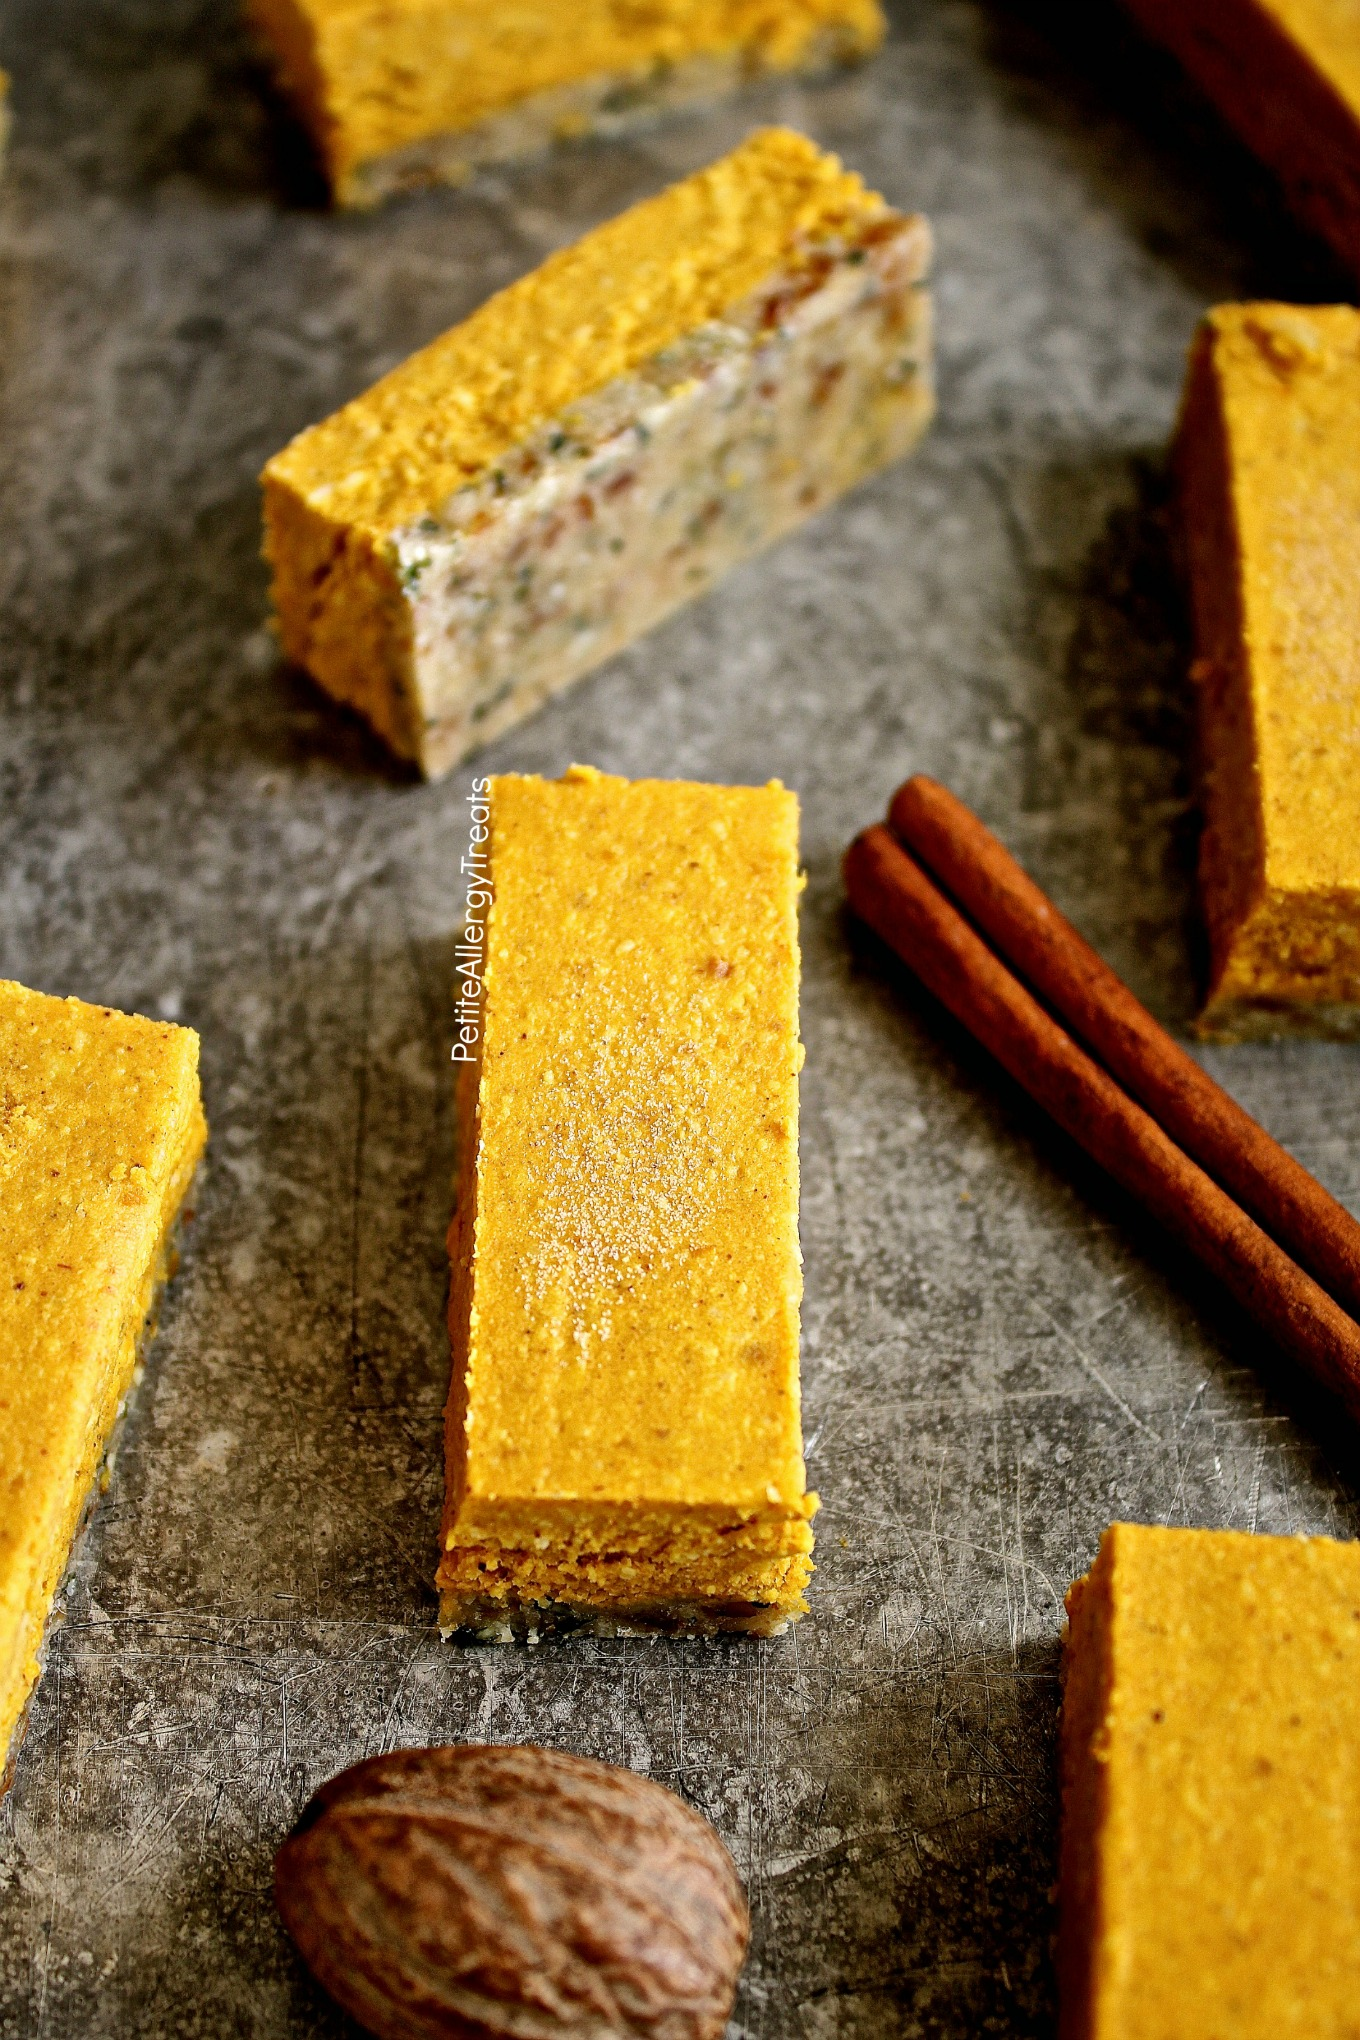 Raw Vegan Gluten Free Pumpkin Pie Bars Recipe (dairy free nut free)- No bake raw bars filled with real pumpkin, coconut butter, dates and hemp seeds. Refined sugar free. Food Allergy Friendly